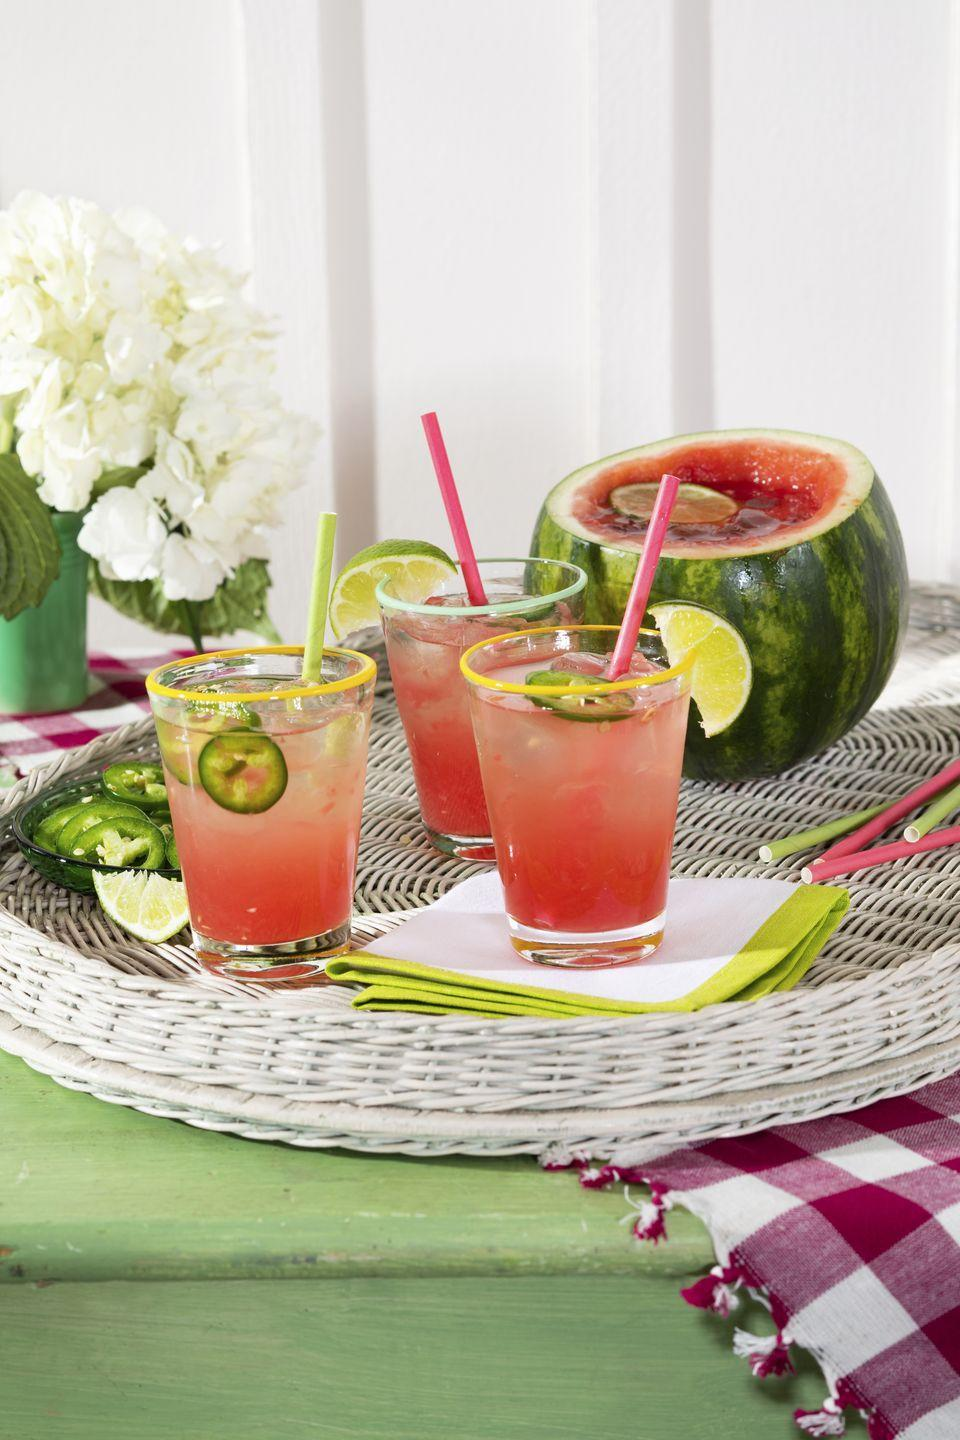 """<p>The jalapeño-infused liquor gives this margarita just enough warmth to keep guests sipping, while the watermelon keeps it refreshing.</p><p><strong><a href=""""https://www.countryliving.com/food-drinks/a36301146/spicy-watermelon-cocktail/"""" rel=""""nofollow noopener"""" target=""""_blank"""" data-ylk=""""slk:Get the recipe"""" class=""""link rapid-noclick-resp"""">Get the recipe</a>.</strong></p>"""